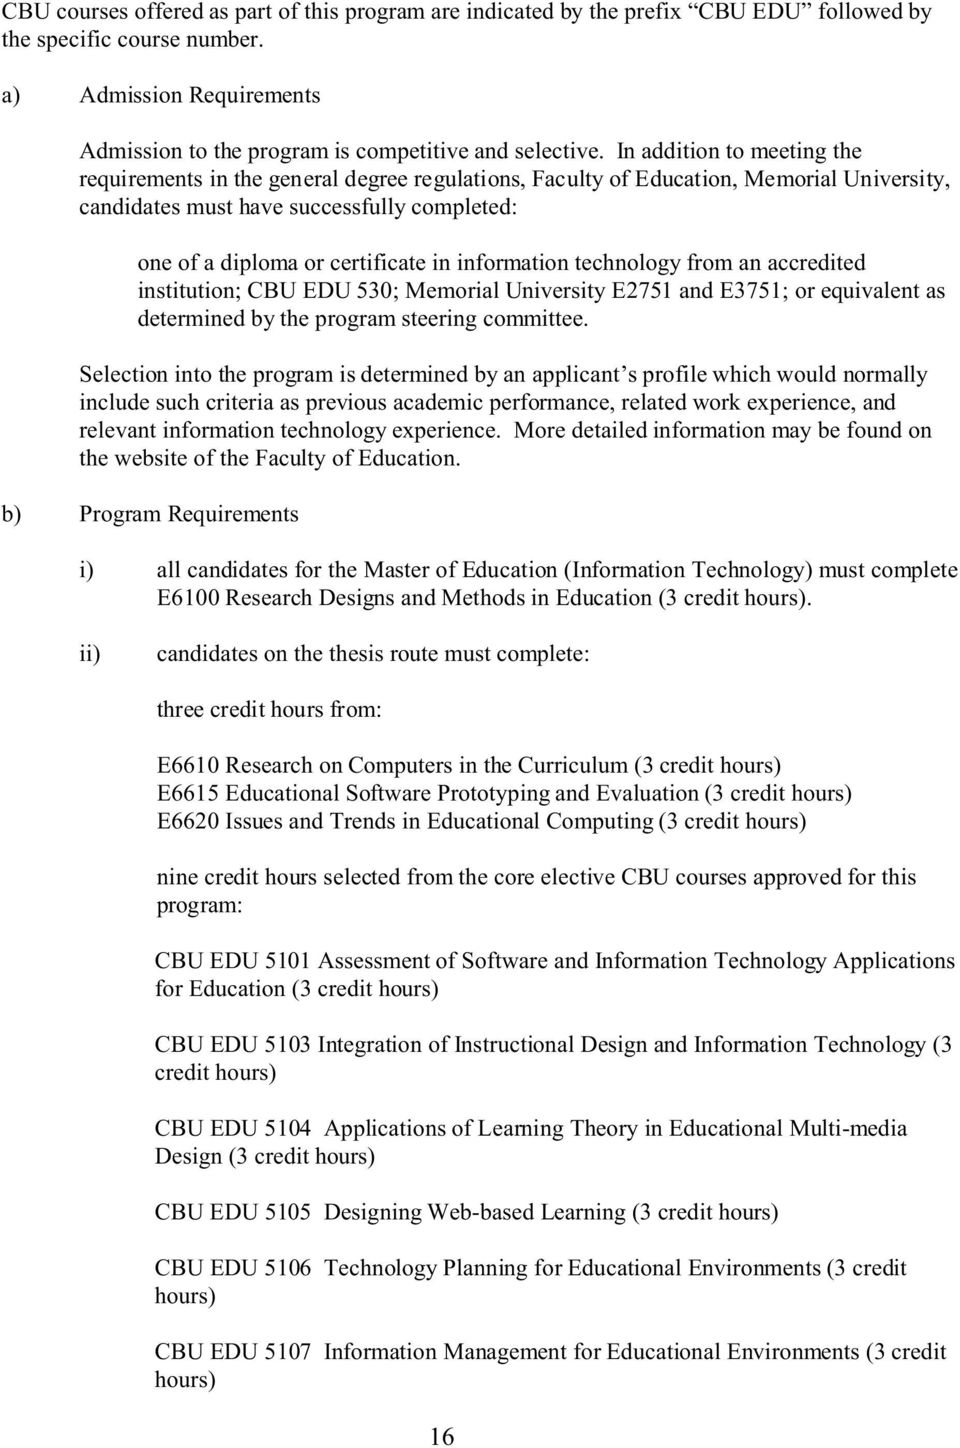 information technology from an accredited institution; CBU EDU 530; Memorial University E2751 and E3751; or equivalent as determined by the program steering committee.